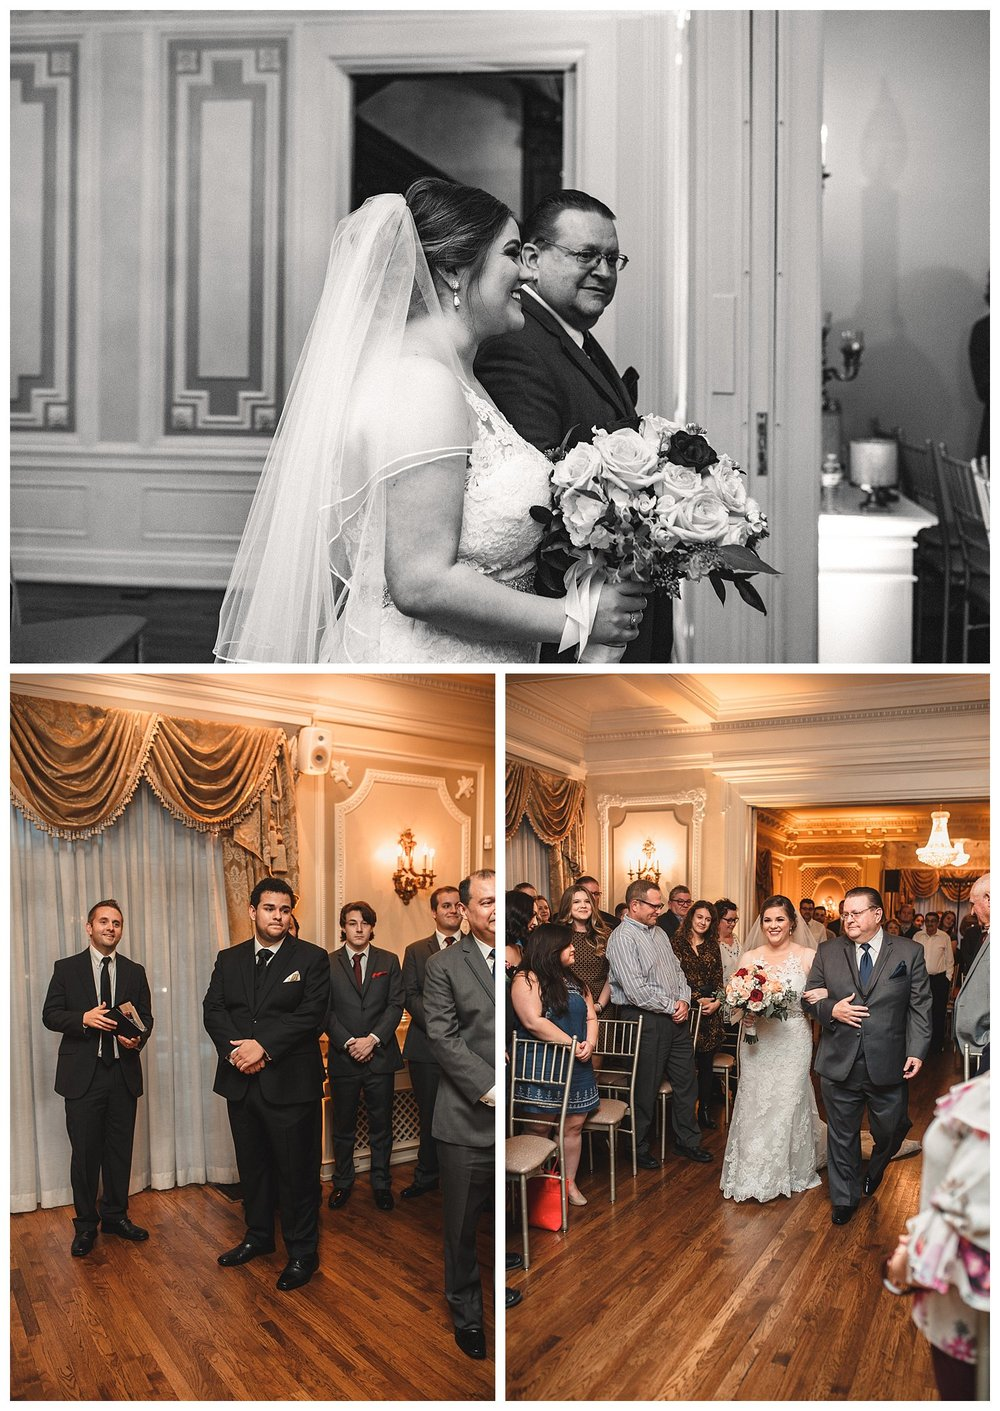 Kelsey_Diane_Photography_Loose_Mansion_Wedding_Photography_Kansas_City_Victor_Lyndsay_0142.jpg